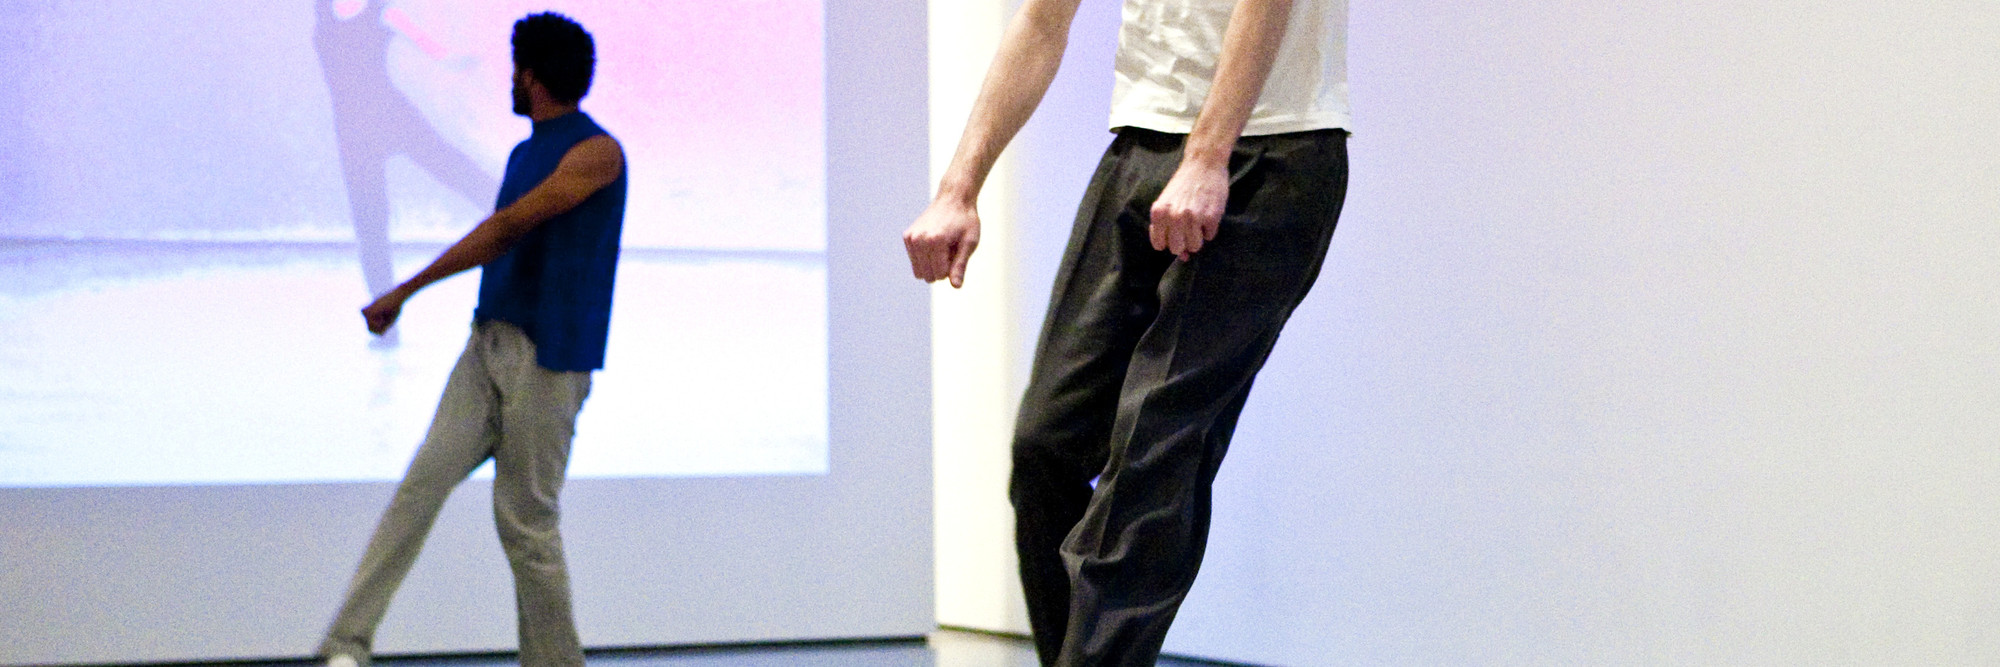 Yvonne Rainer. <em>Trio A.</em> 1965. Performed by Jimmy Robert and Ian White at TheMuseum of Modern Art, 2009. © 2009 Yi-Chun Wu / The Museum of Modern Art